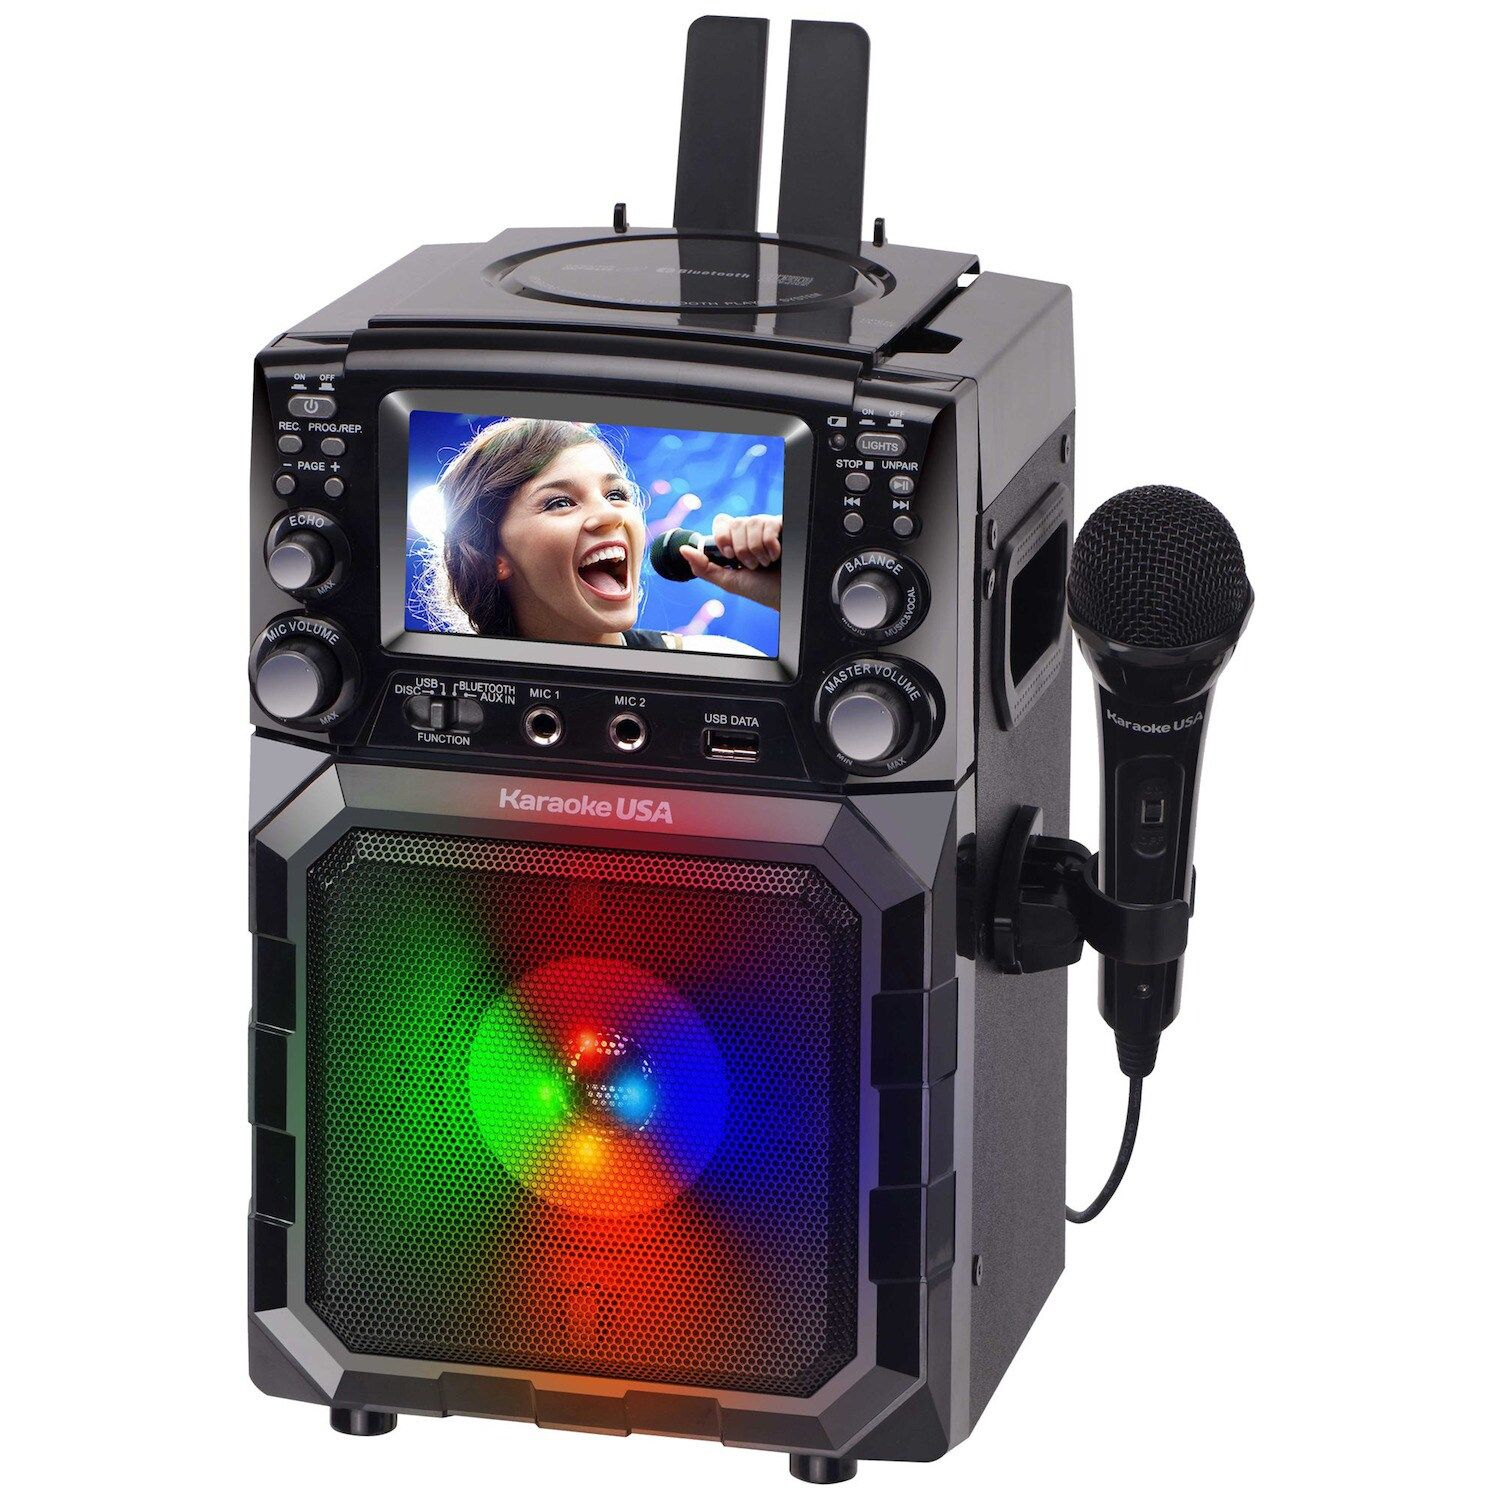 Karaoke USA Portable CDG/MP3G Bluetooth Karaoke Player with 4.3 TFT Color Screen and Recording Function